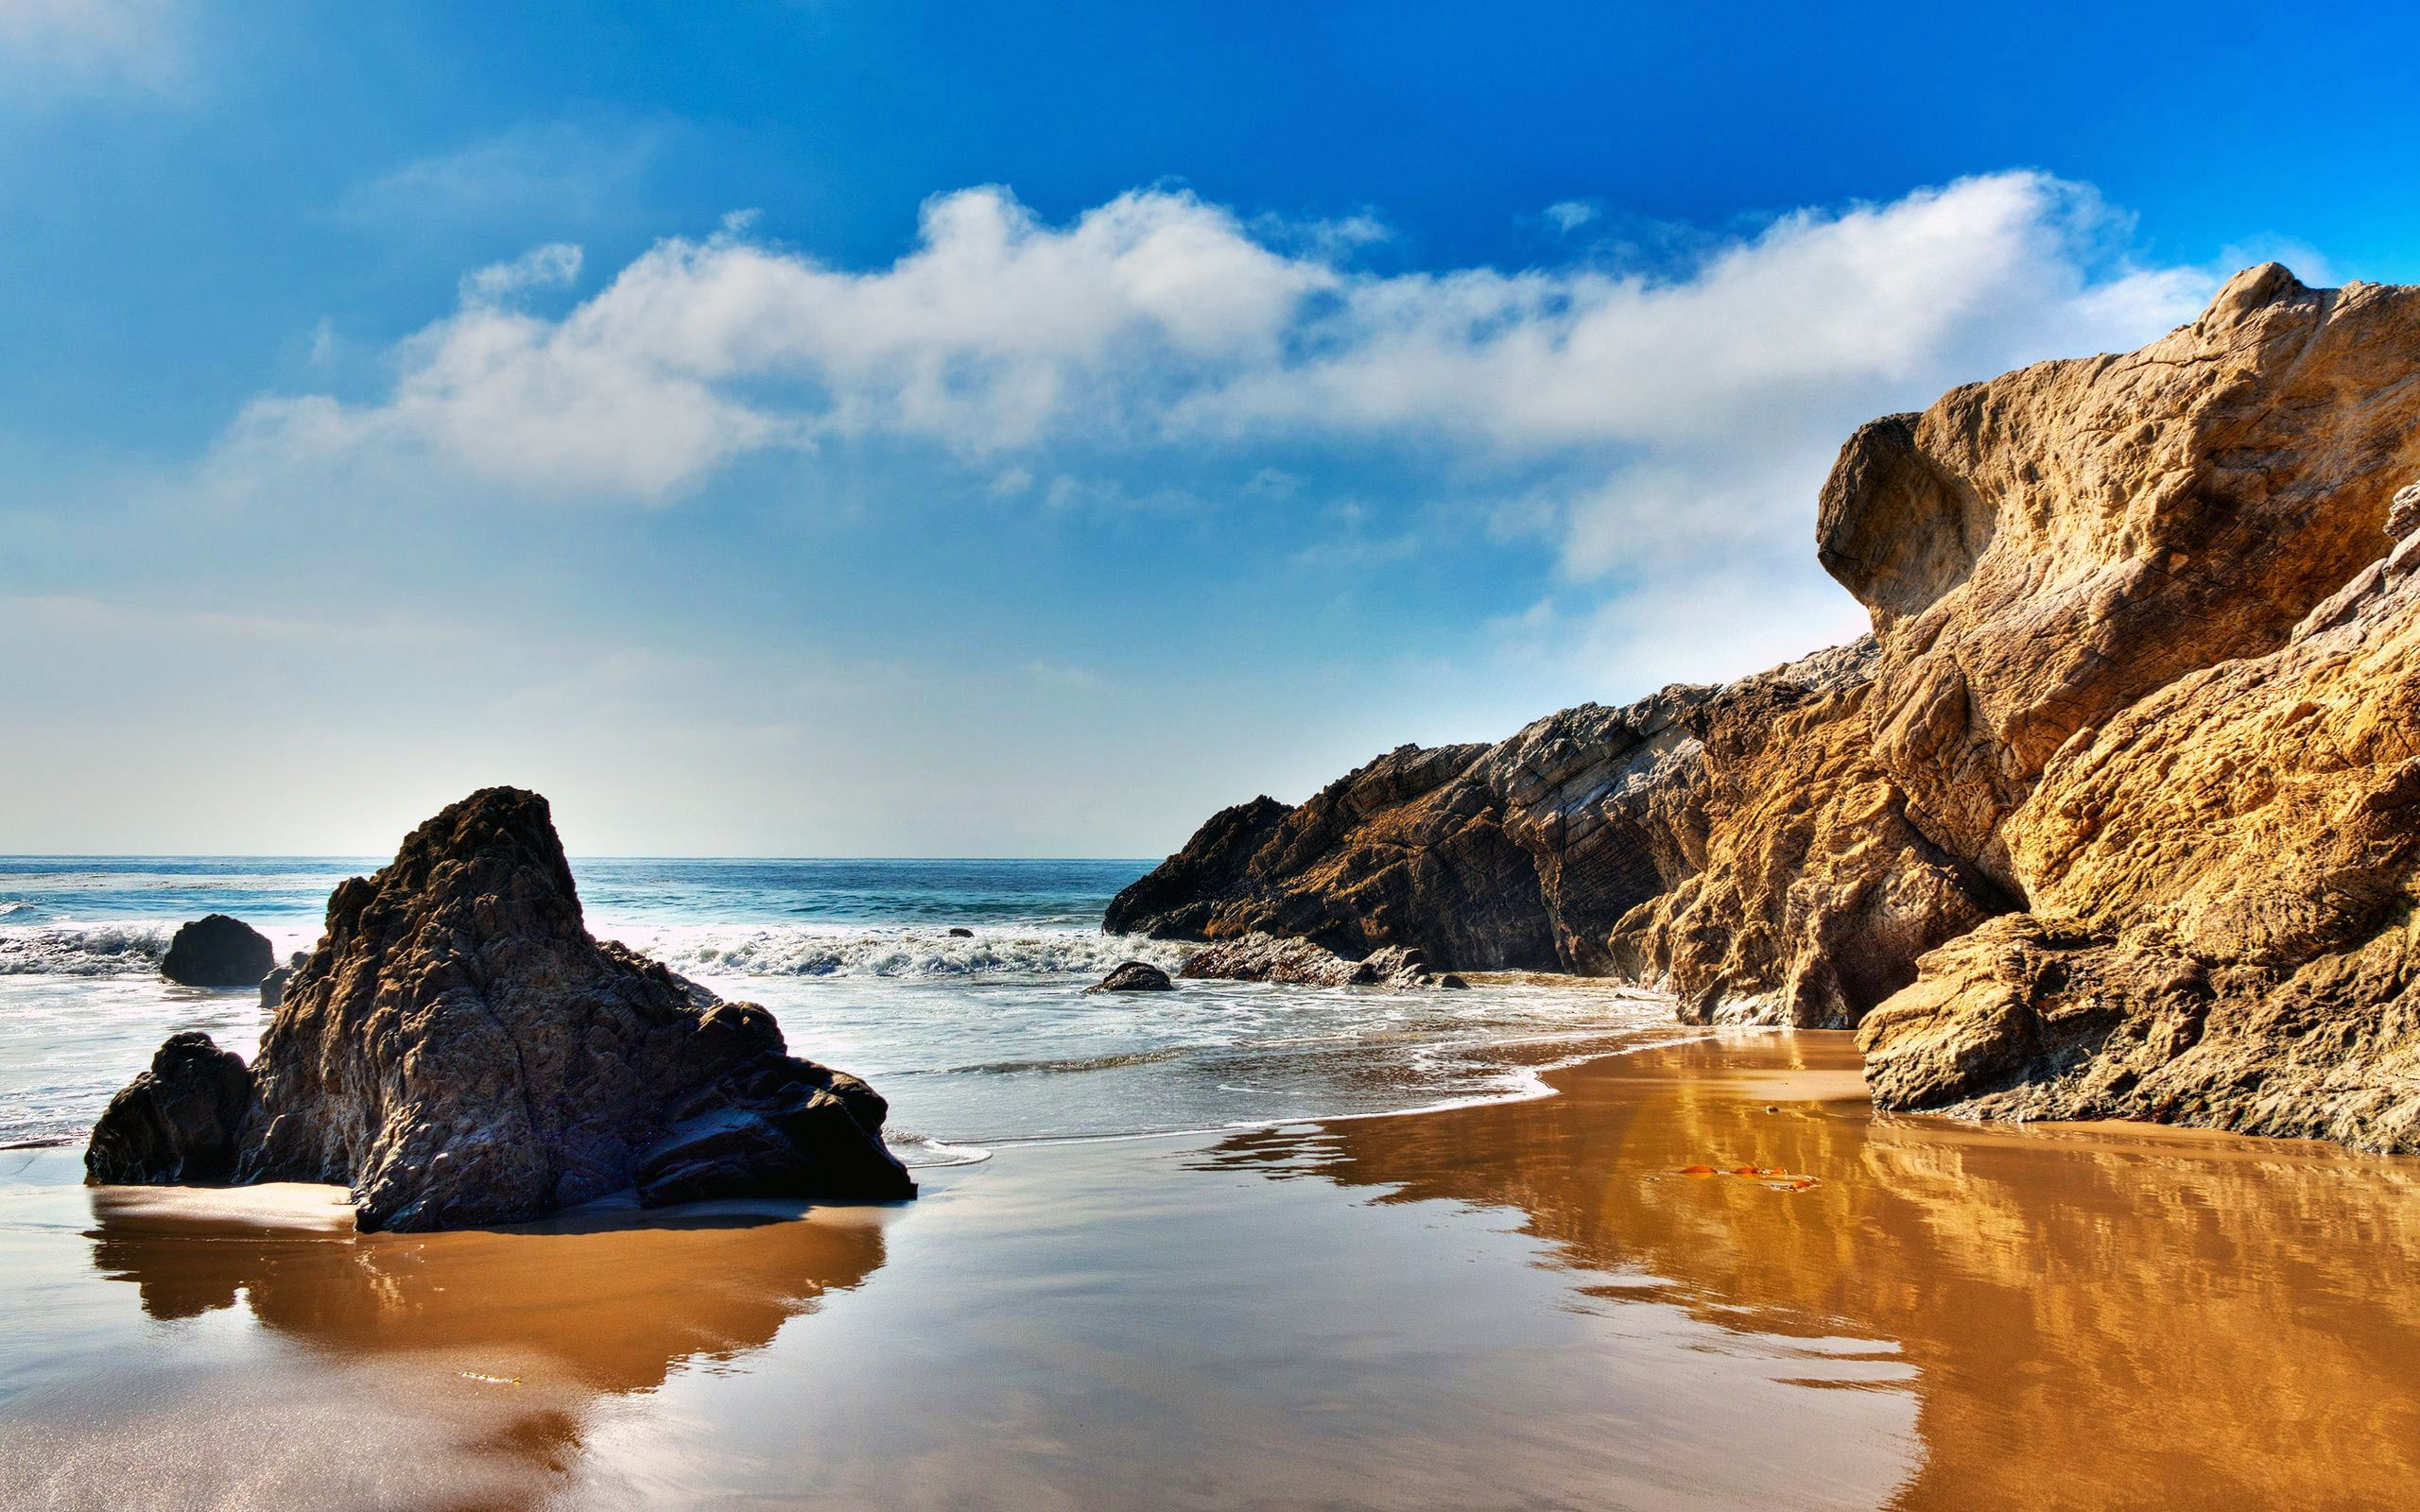 The Wallpaper Of Beach At The Pacific Ocean In Malibu California Malibu California Beach Beach Wallpaper Malibu Beaches